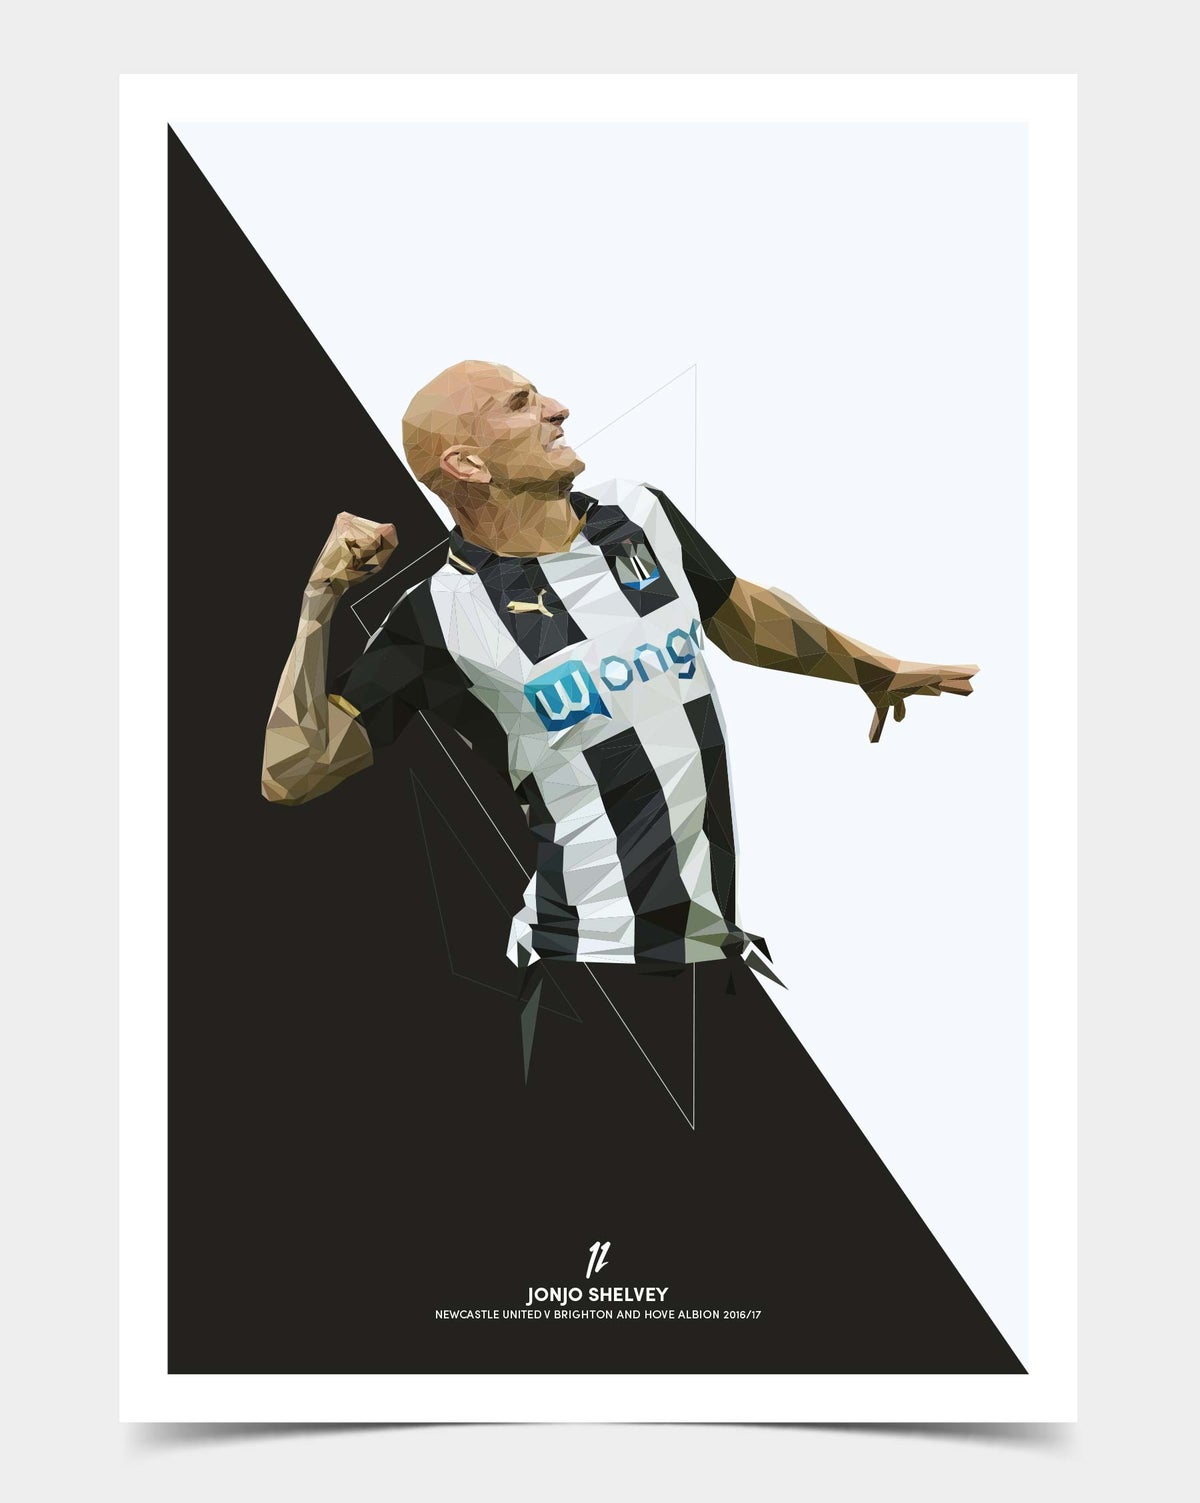 Image of Shelvey12